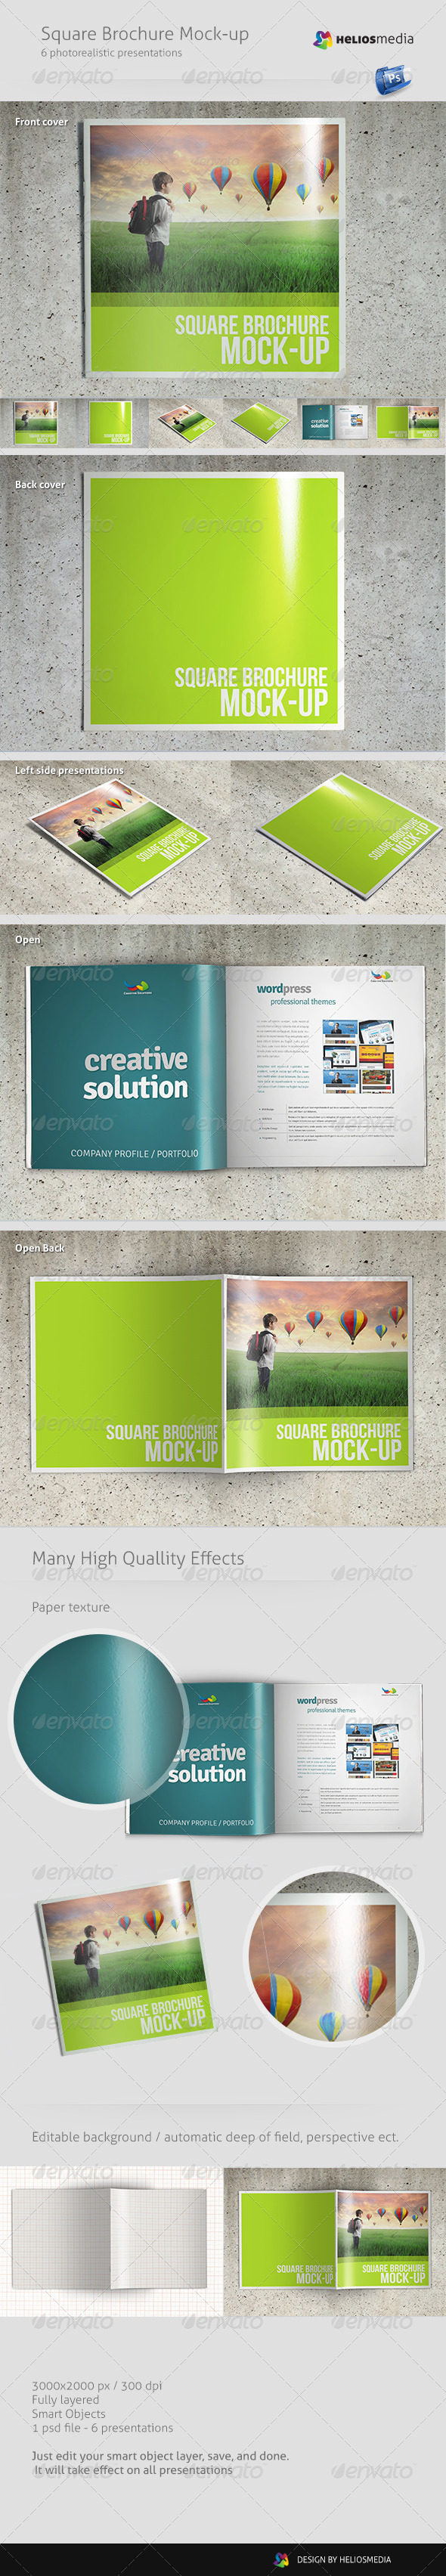 Square Brochure Mock-up - Brochures Print